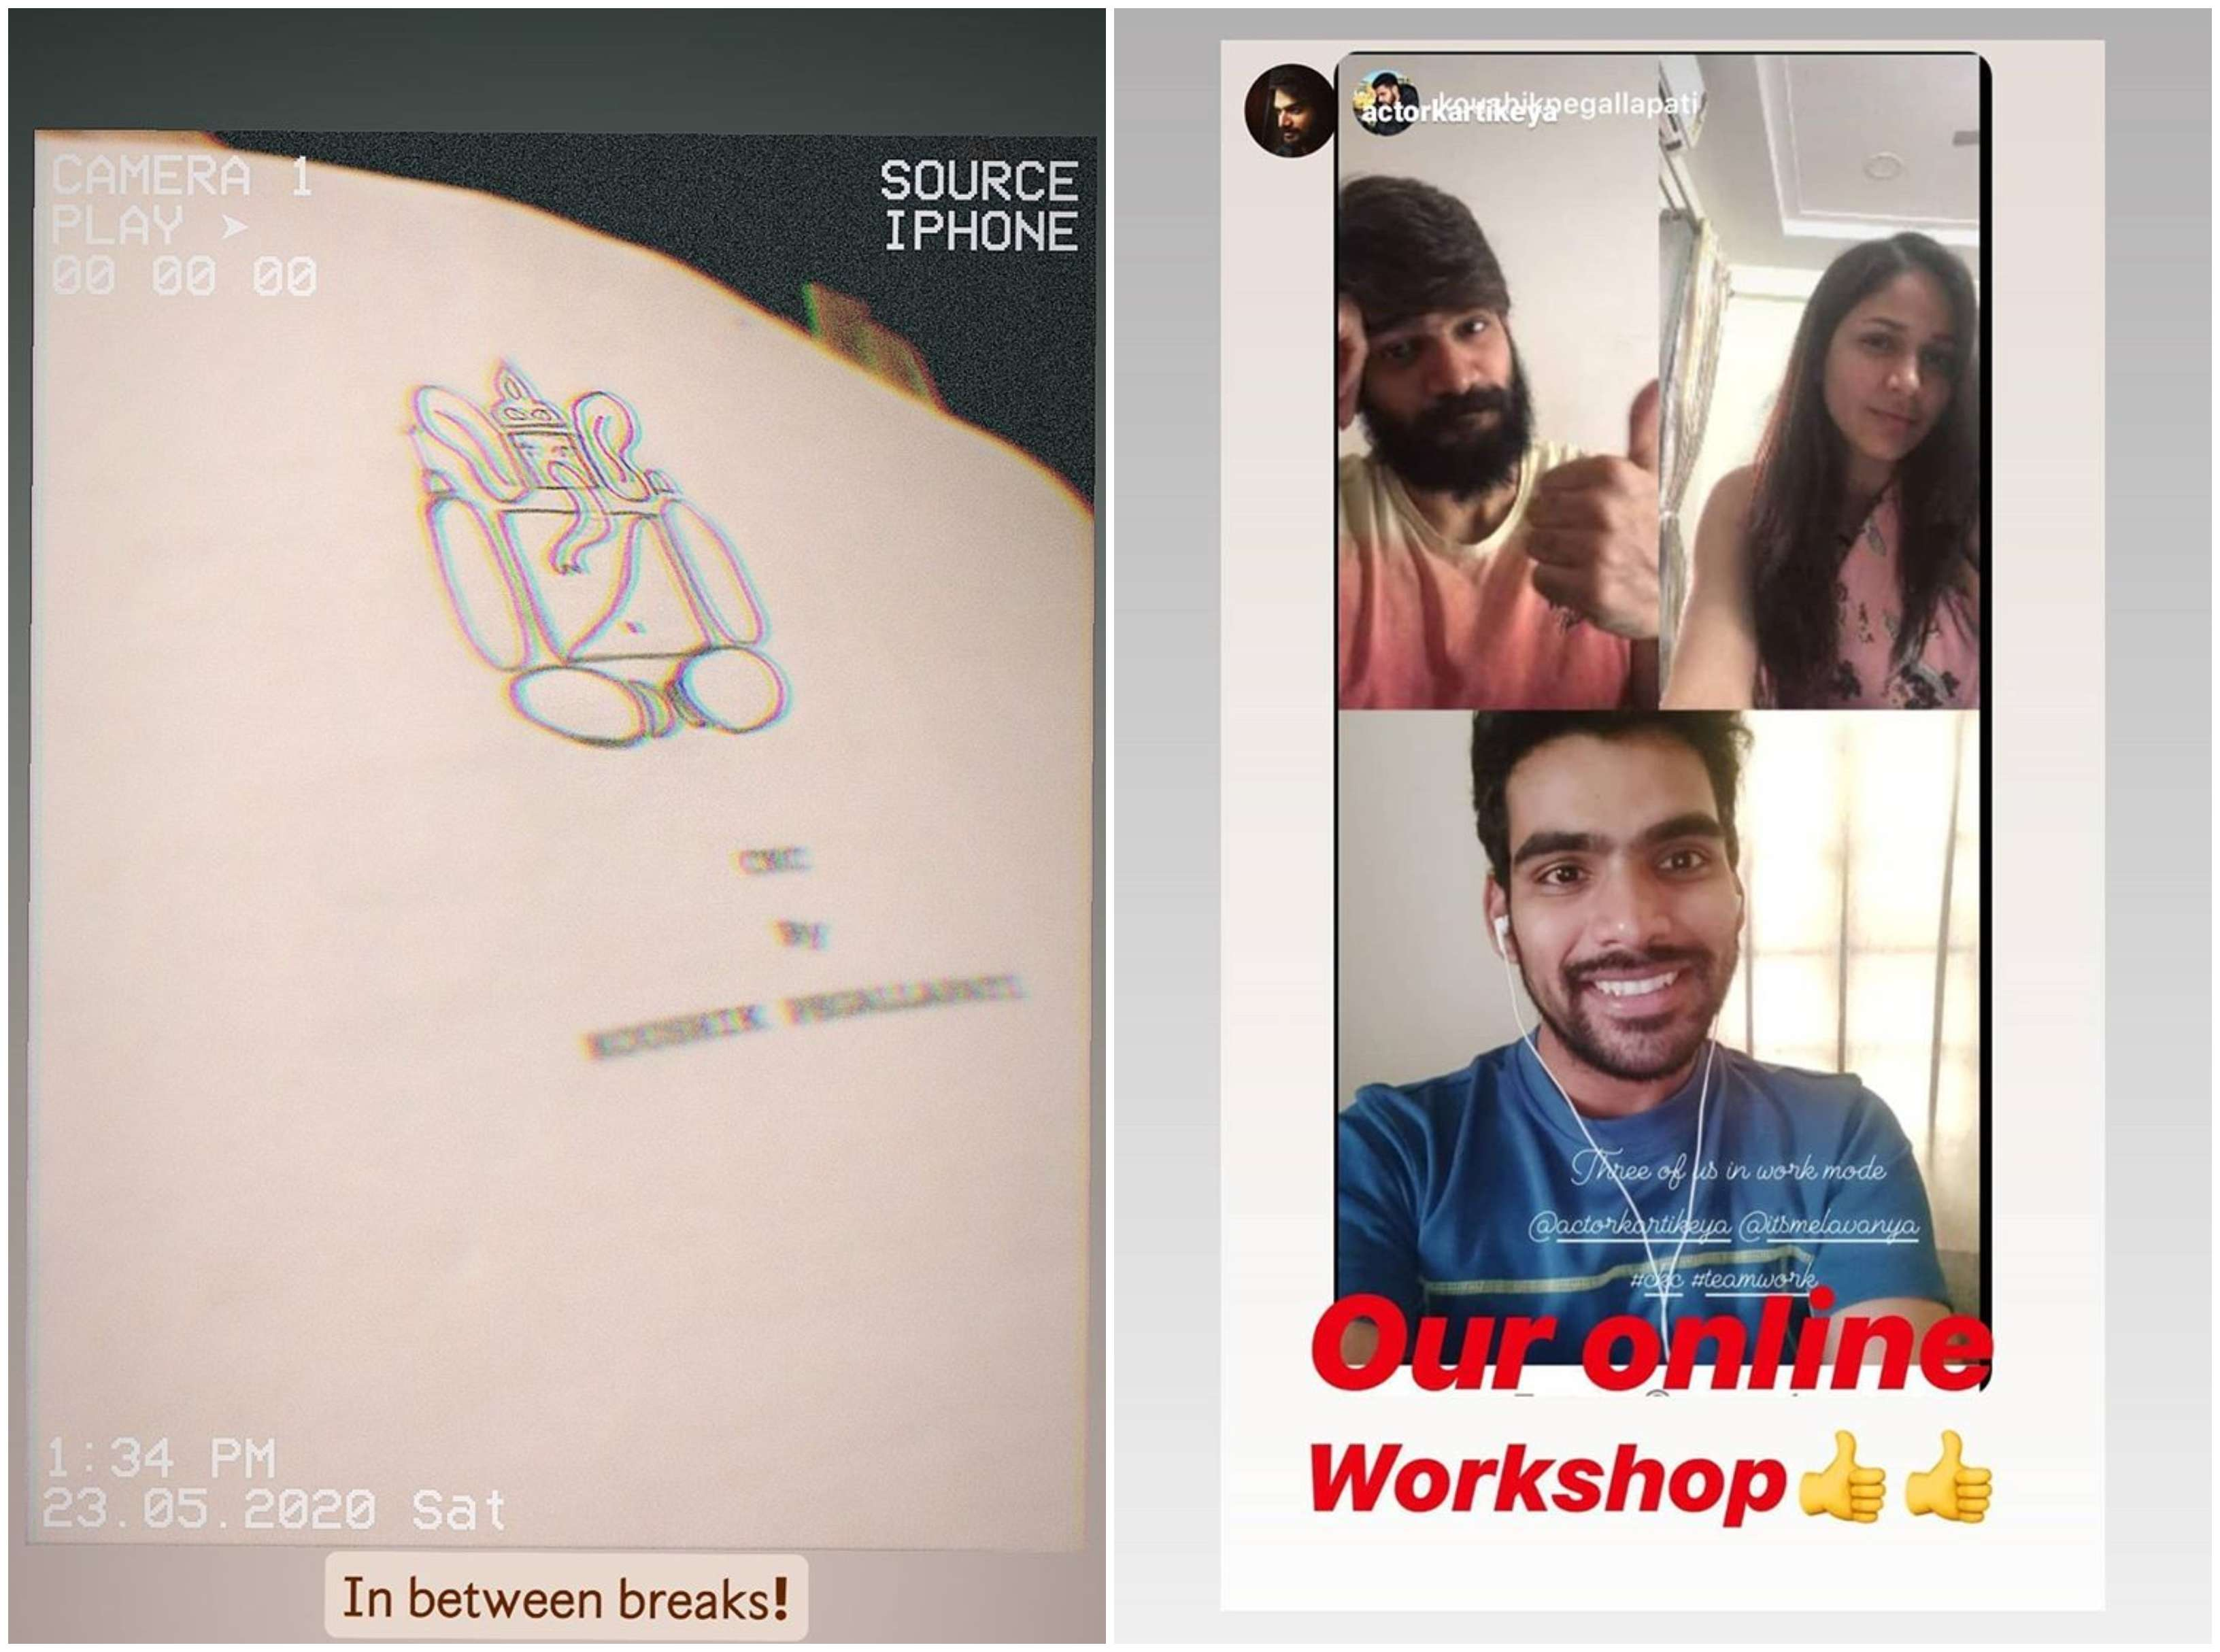 Karthikeya Lavanya Tripathi Online Workshop 3